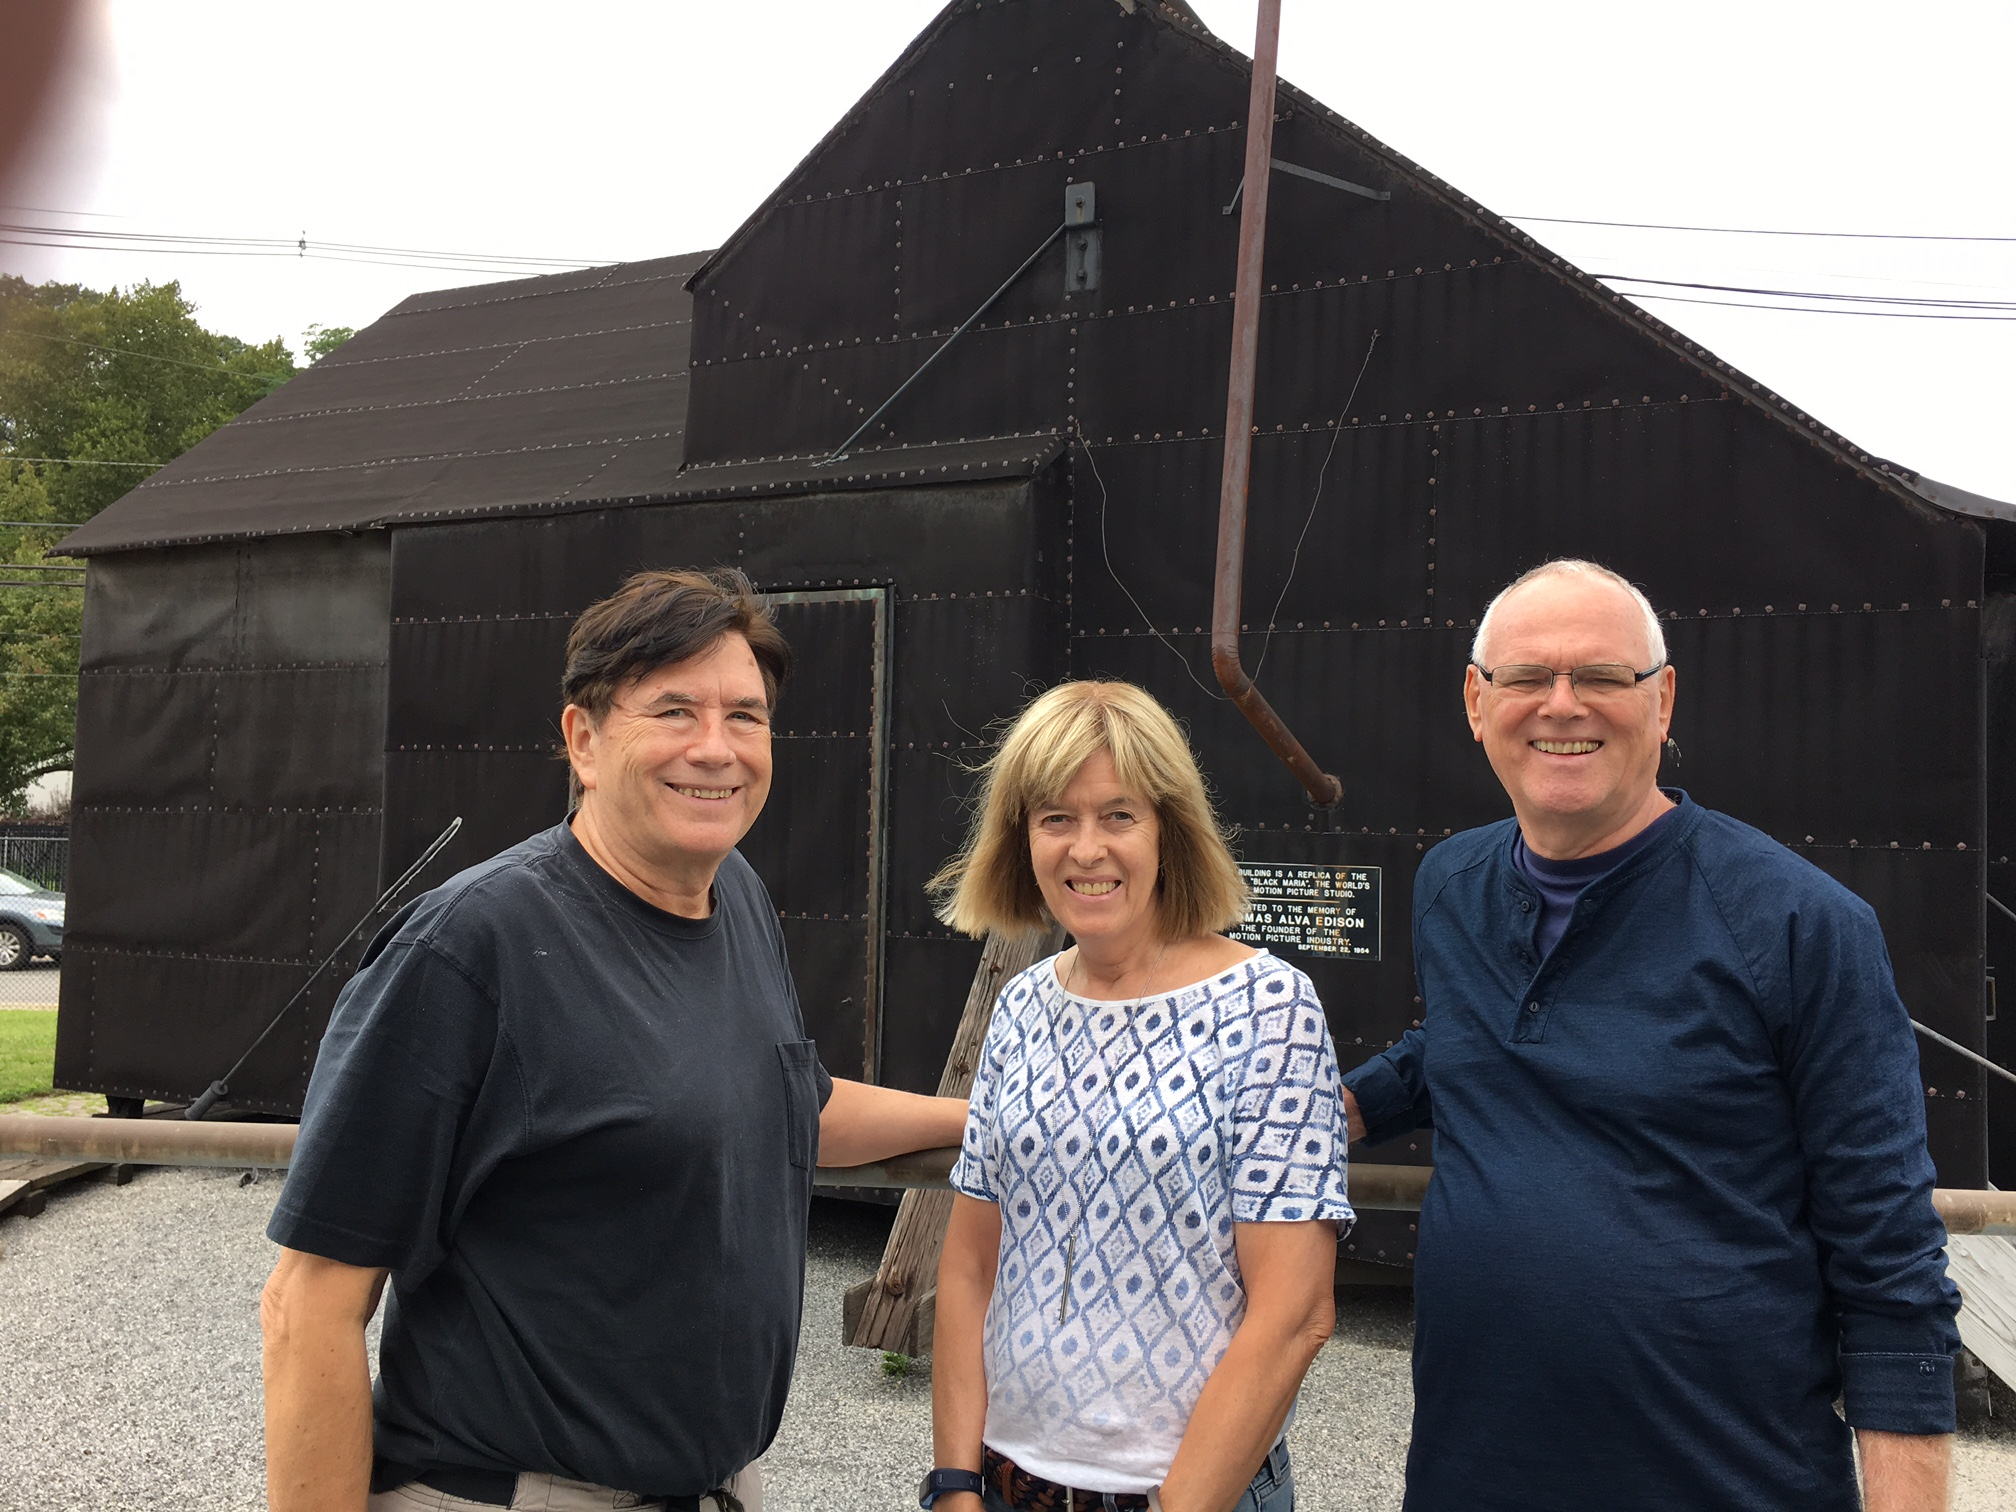 John, Nancy, & Bernd in front of Black Maria, the first movie studio, at Edison's complex in NJ